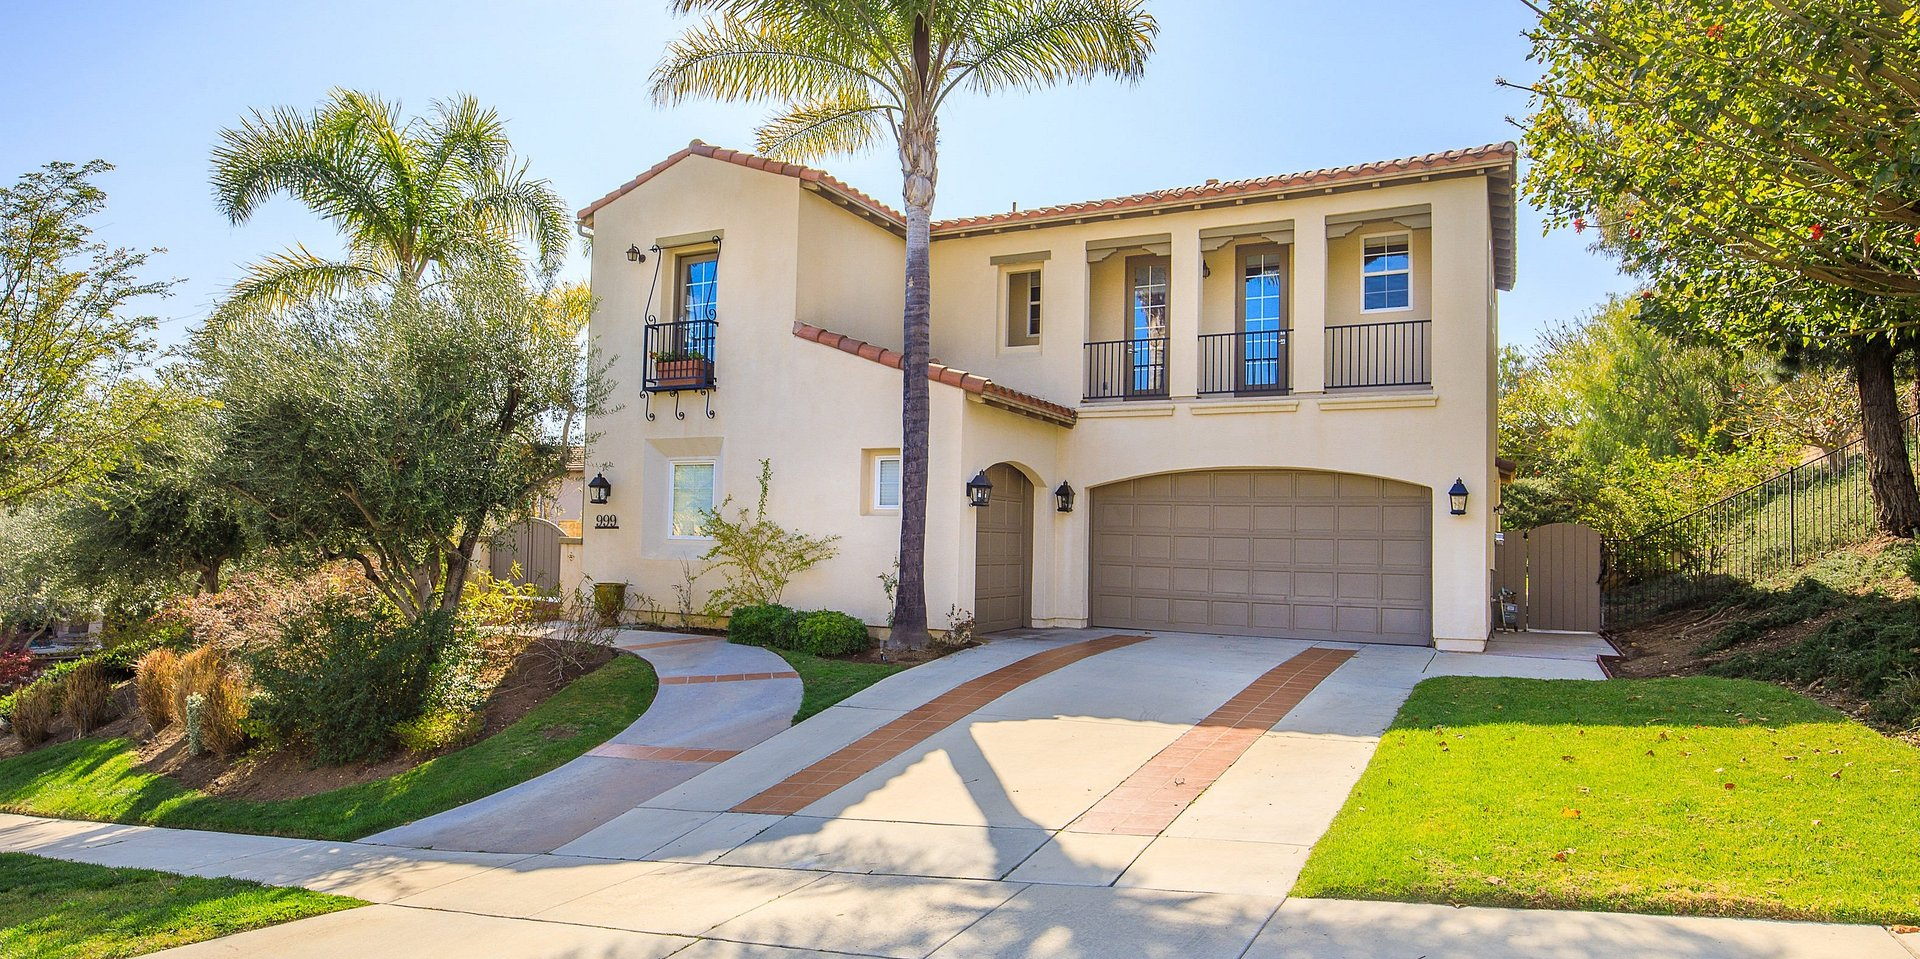 Coldwell Banker Residential Brokerage Lists a Newbury Park Property for $1.599 Million